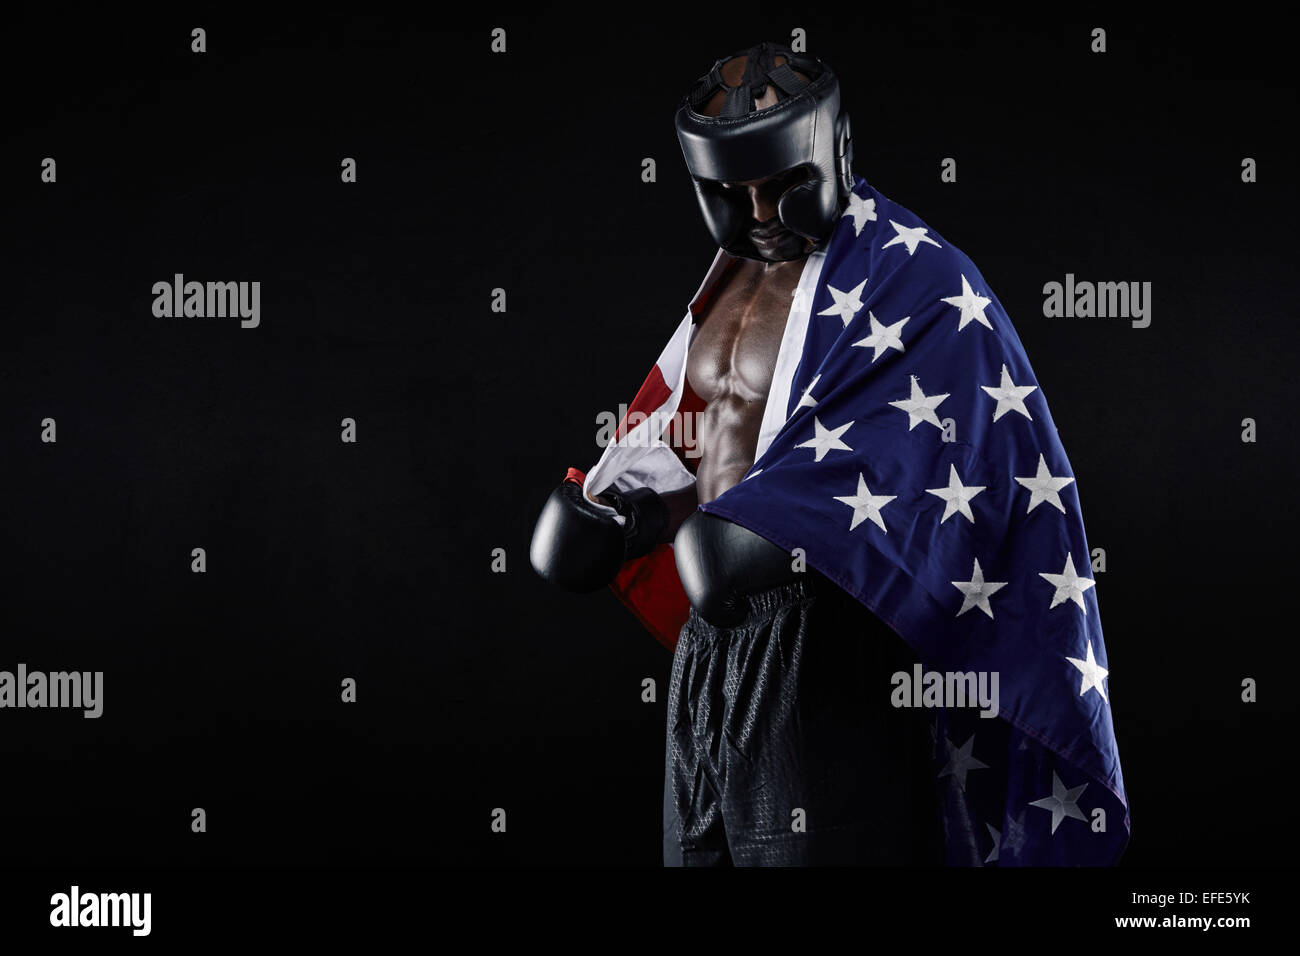 Portrait of young male boxer with American flag on black background. African man in boxing gear looking down. - Stock Image